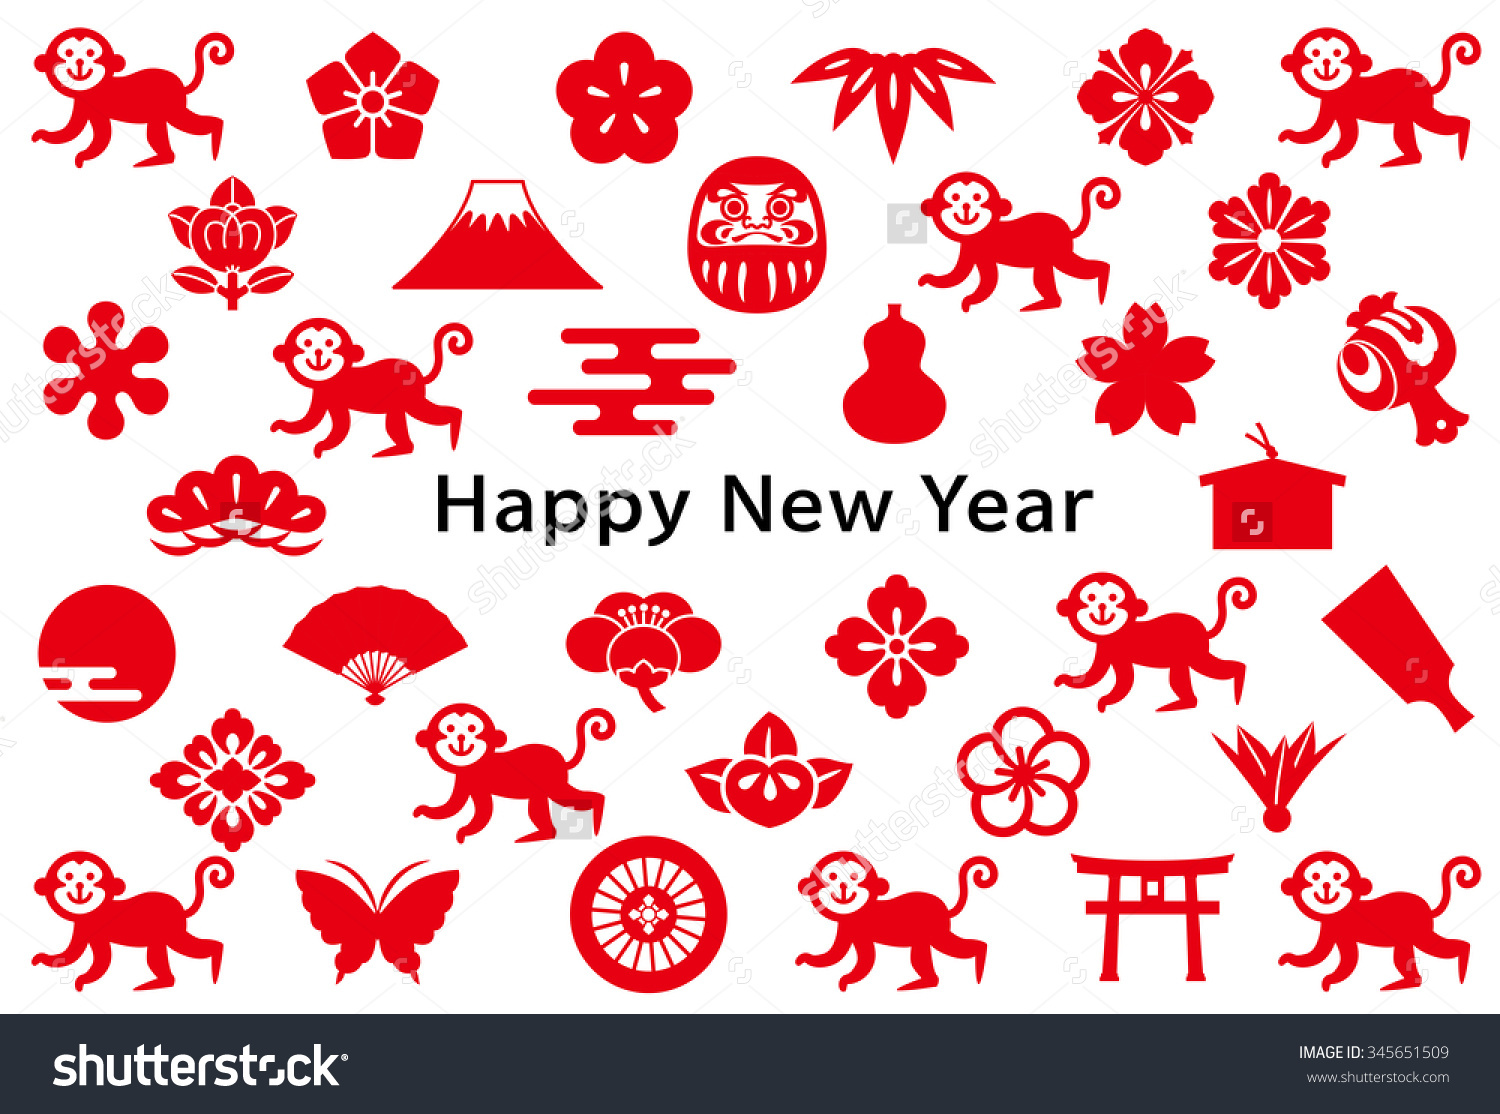 Monkey clipart icon new year vector free download New Year Card With Monkey And Japanese Icons. Stock Vector ... vector free download